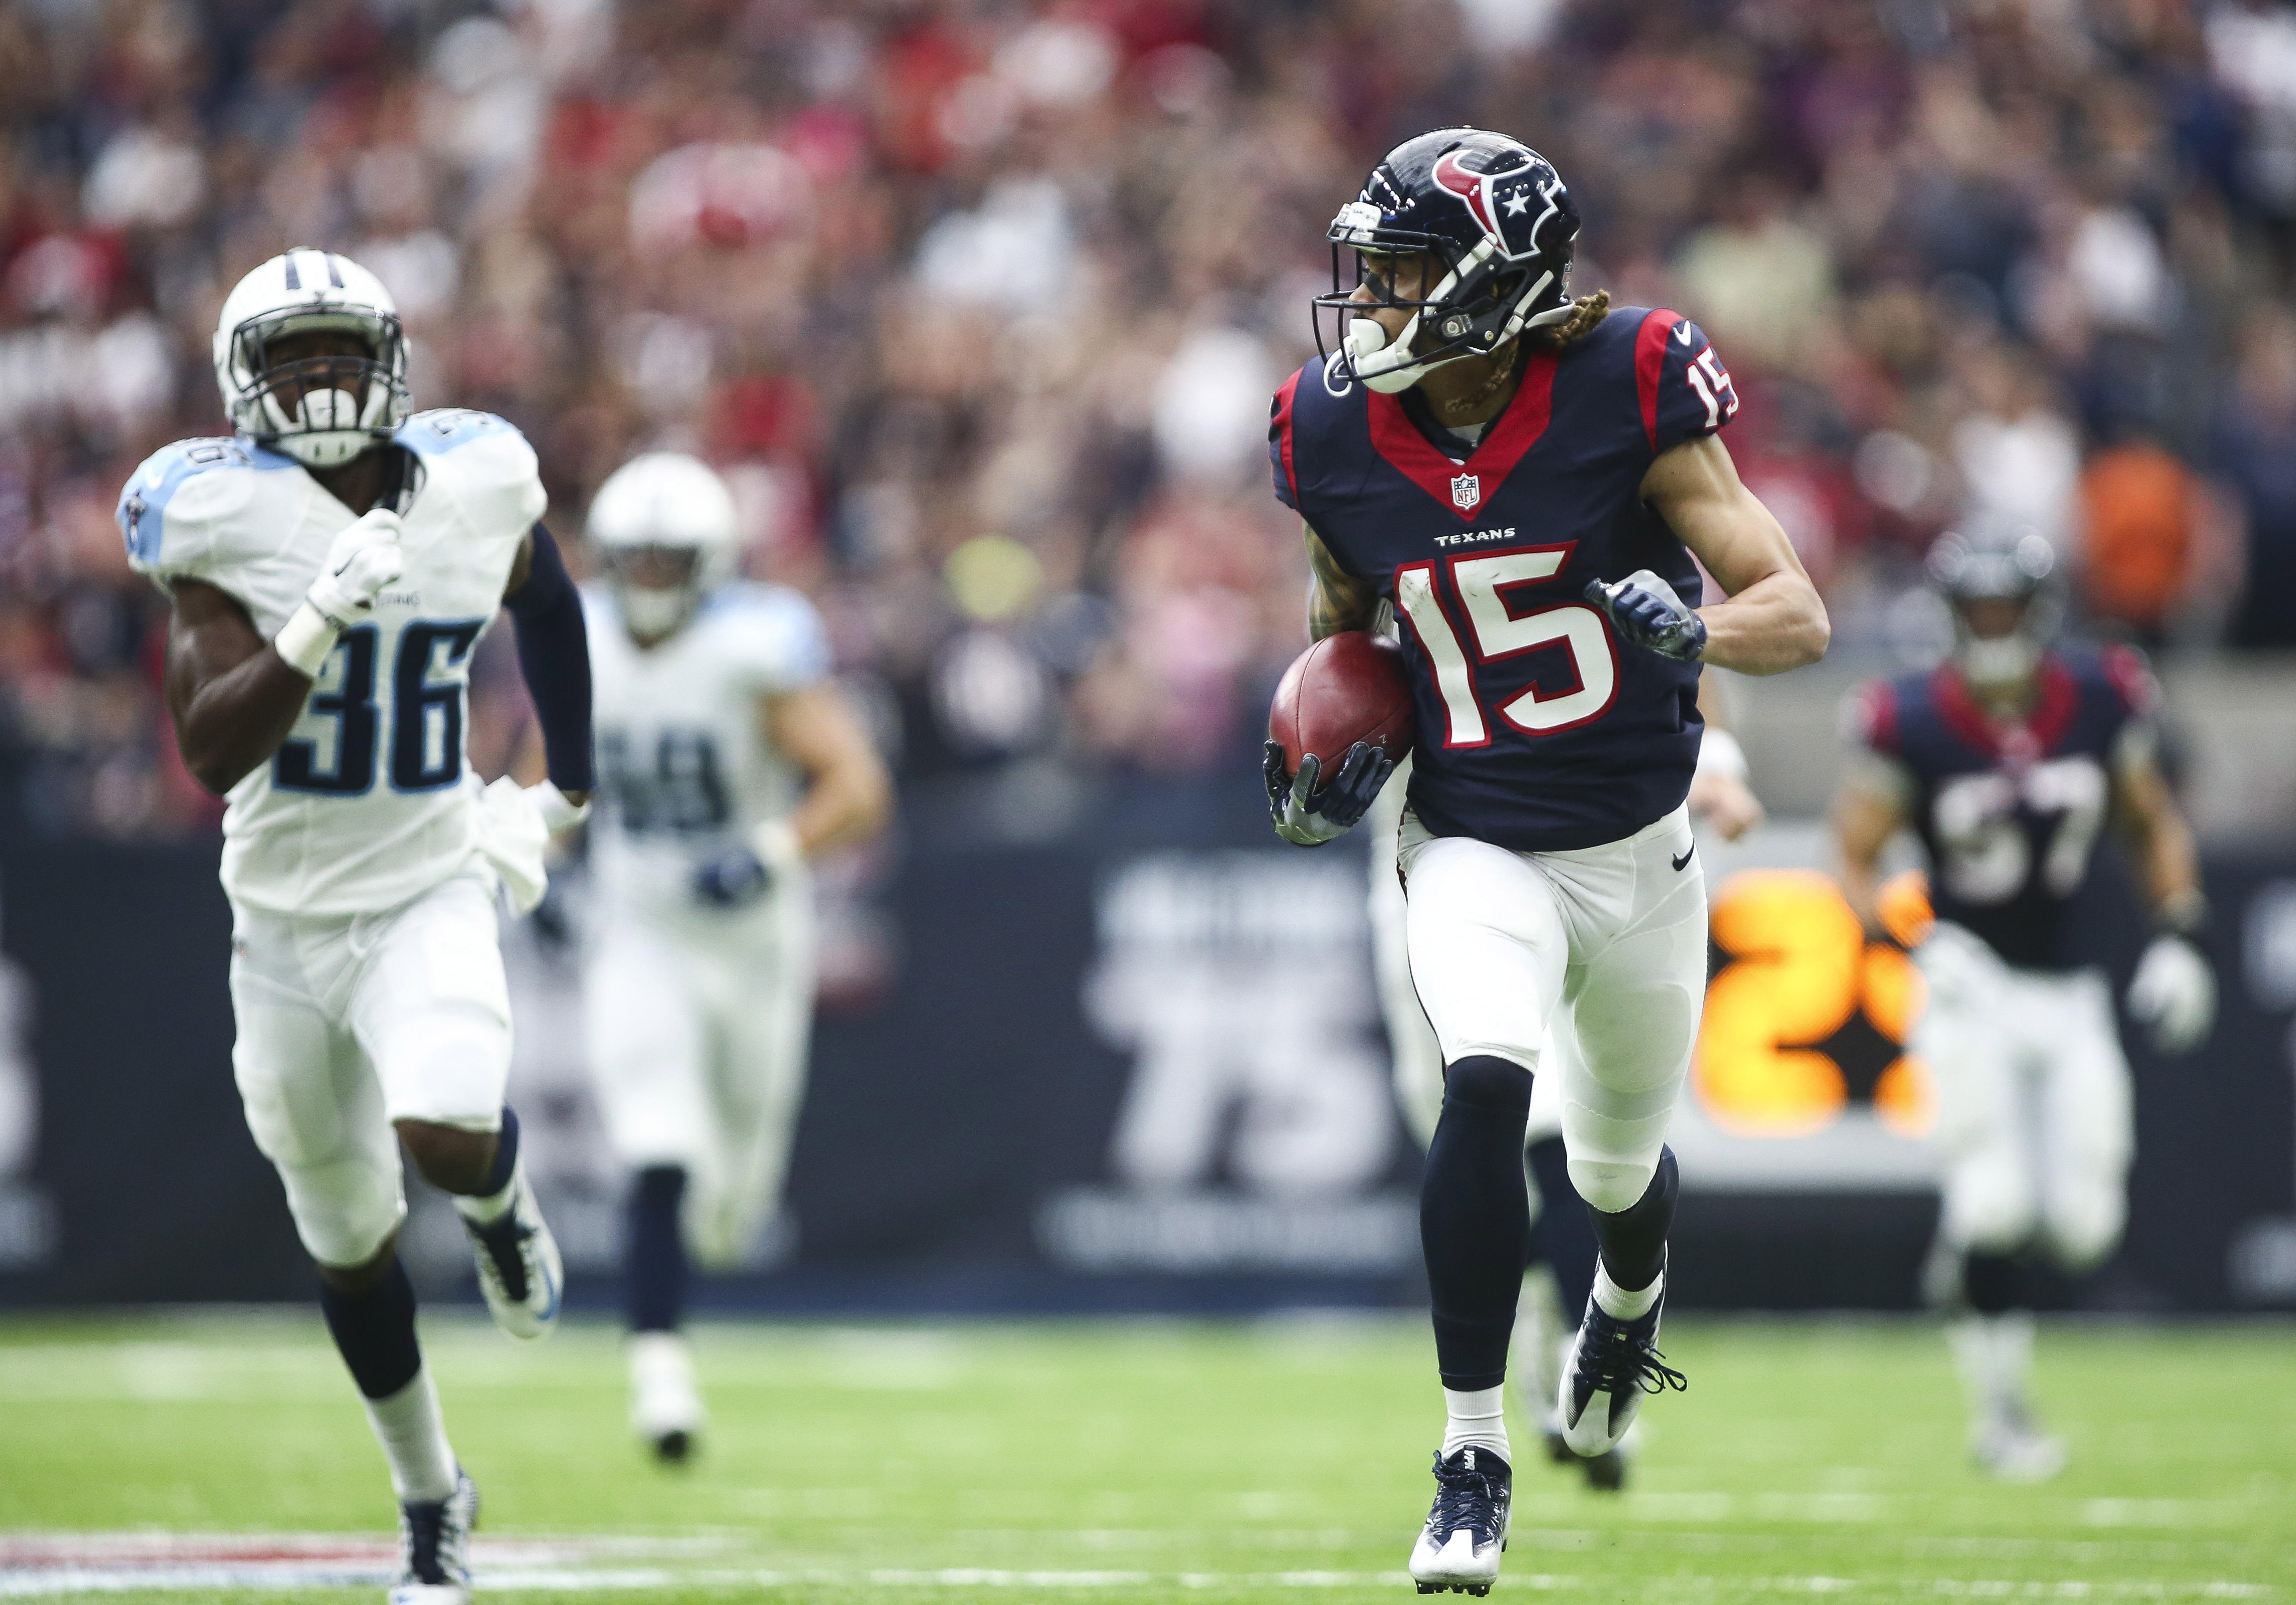 9585655-nfl-tennessee-titans-at-houston-texans